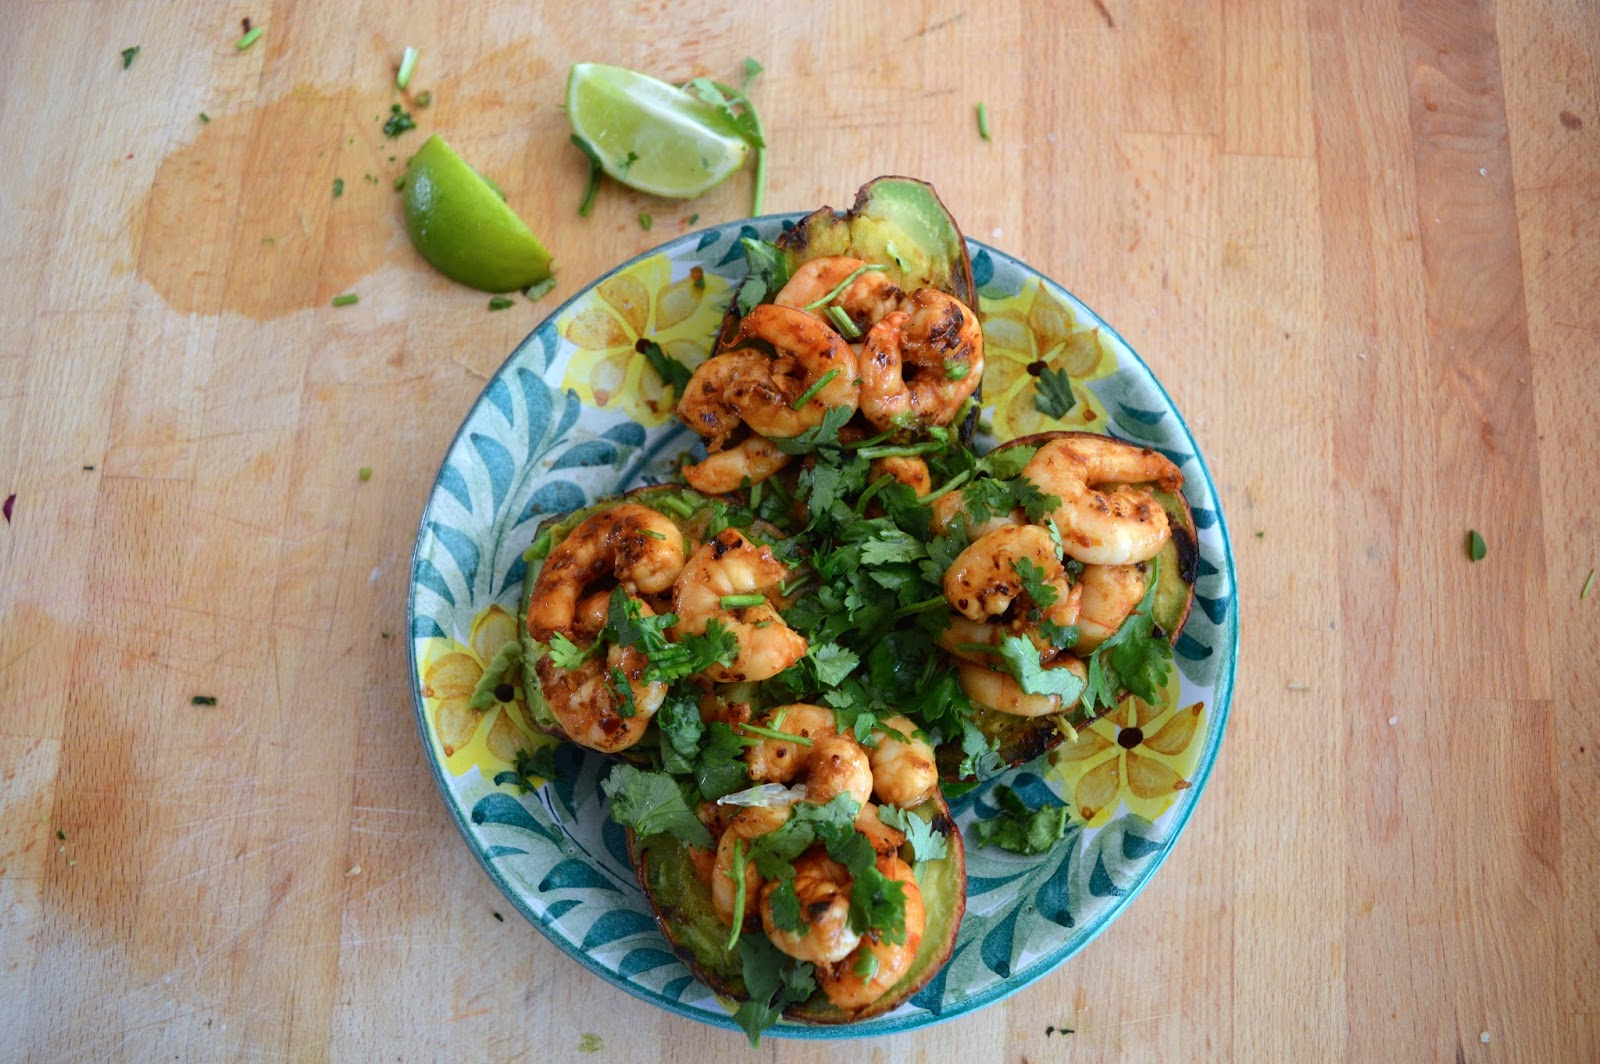 Grilled Avocado With Prawns recipe, food bloggers, Dalry Rose Blog